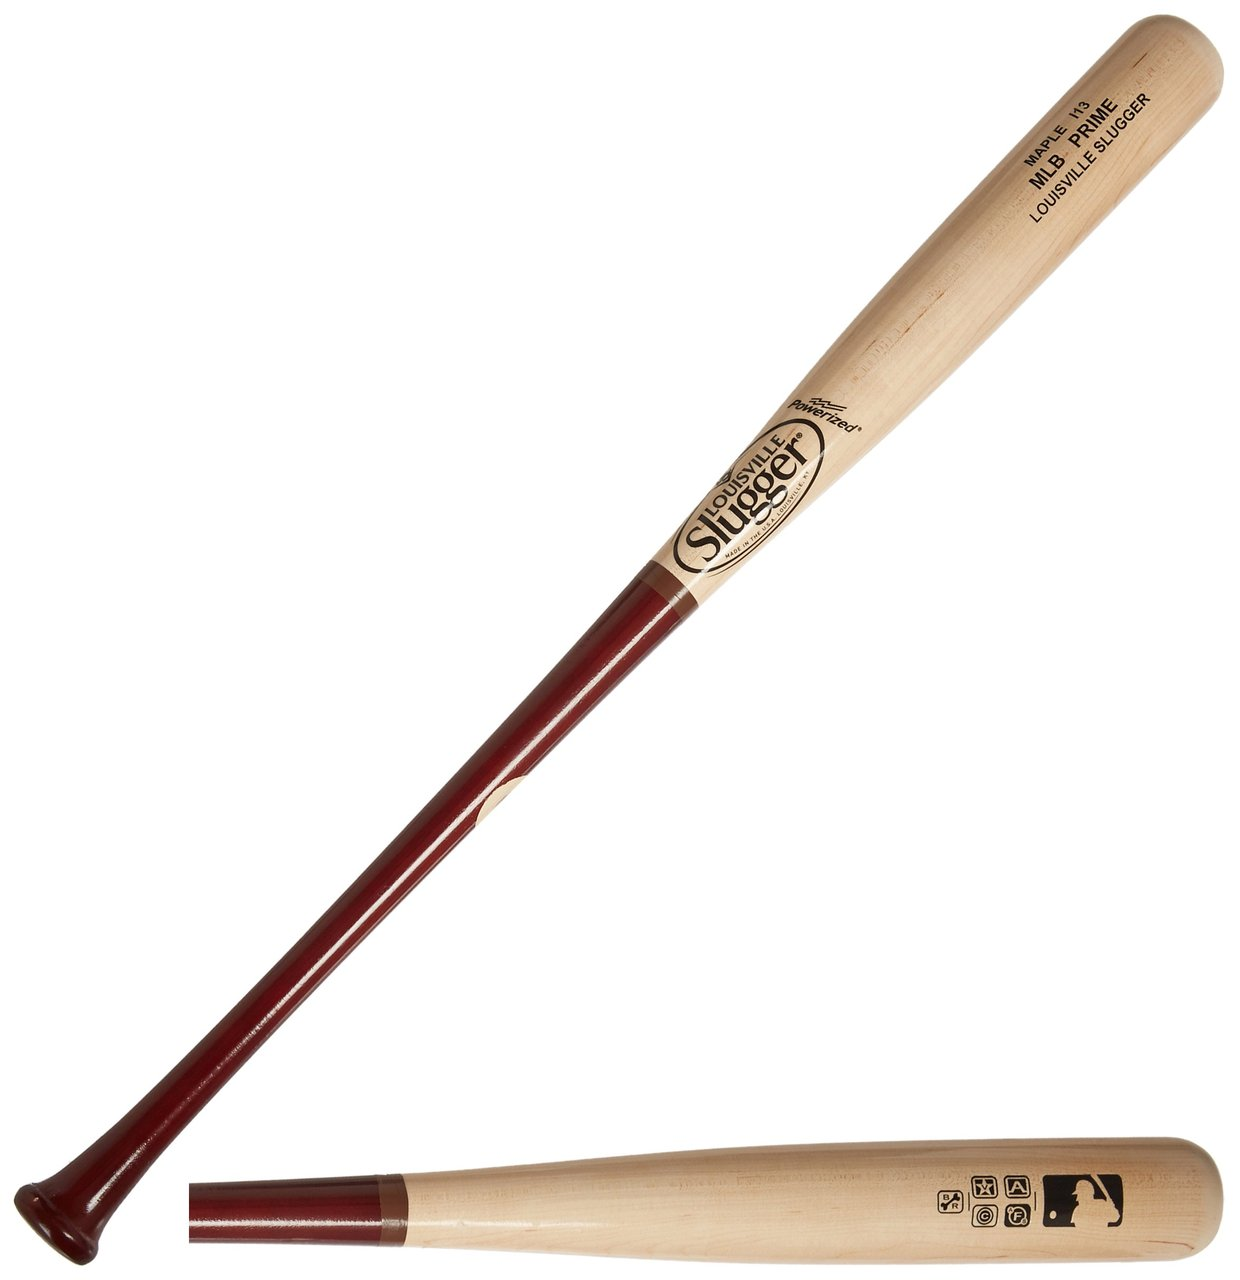 louisville-slugger-wbvmi13-nh-mlb-prime-maple-wood-baseball-bat-32-inch-1 WBVMI13-NH32 Louisville 044277053956 Louisville Slugger wood baseball bat MLB prime maple i13 turning model